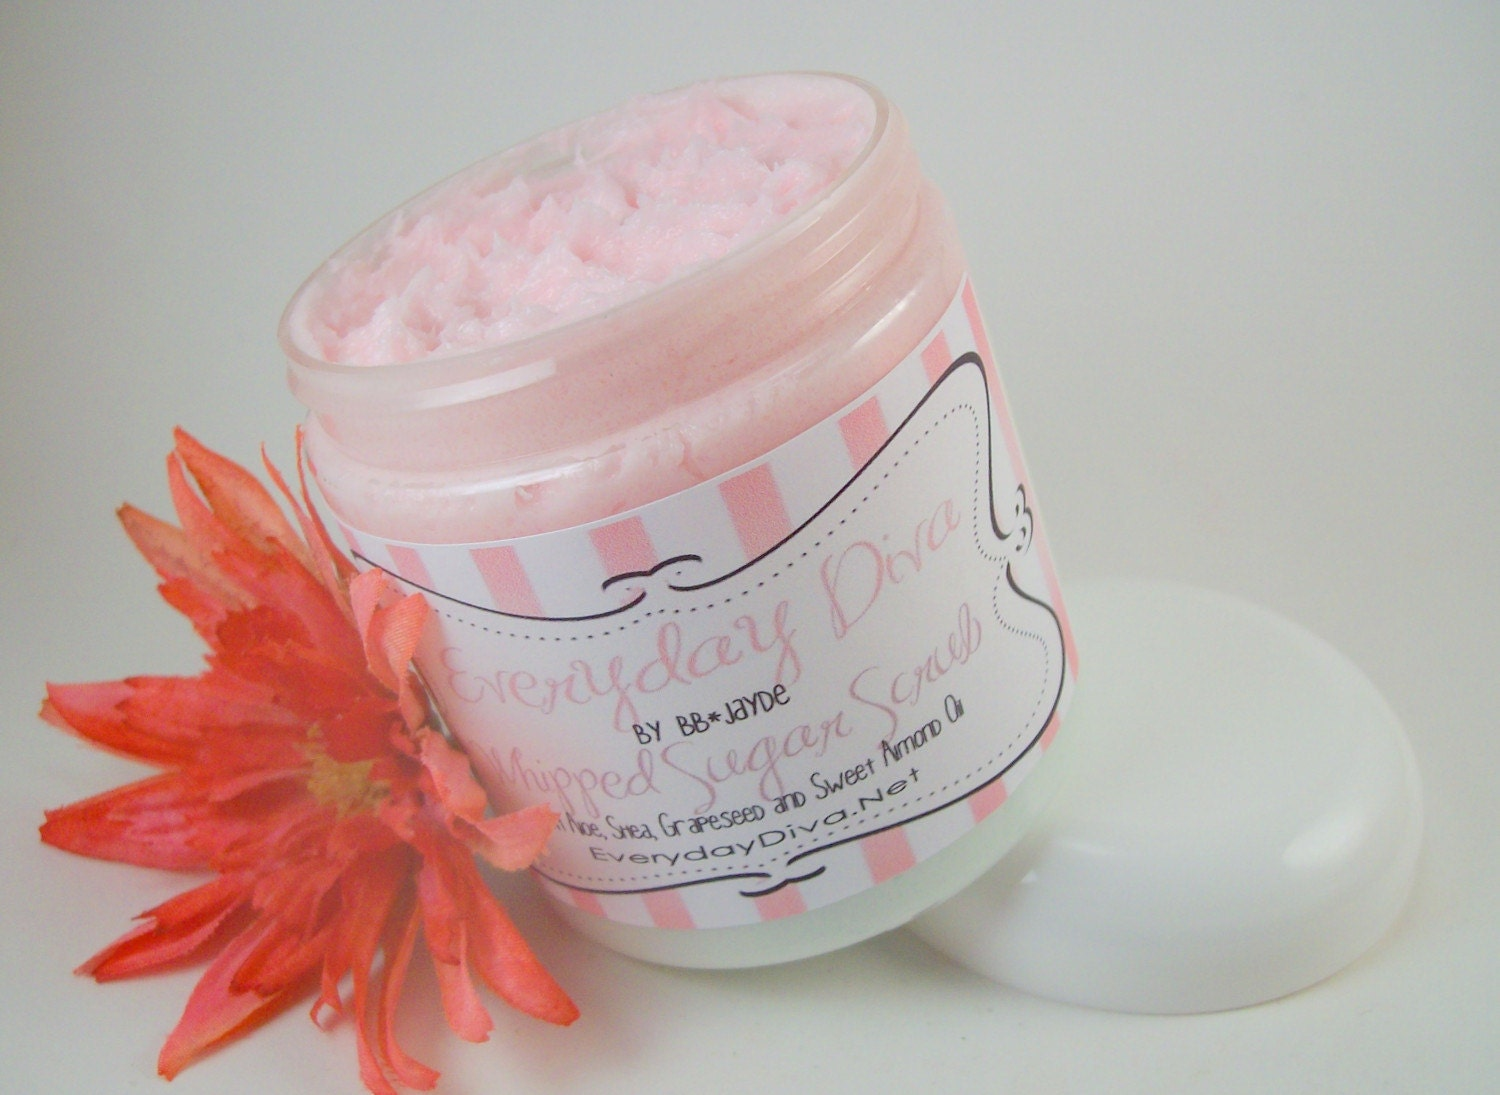 Rainbow Sherbet - Whipped Facial and Body Polishing Sugar Scrub 10 ounces - Sulfate, Paraben and Chemical Free